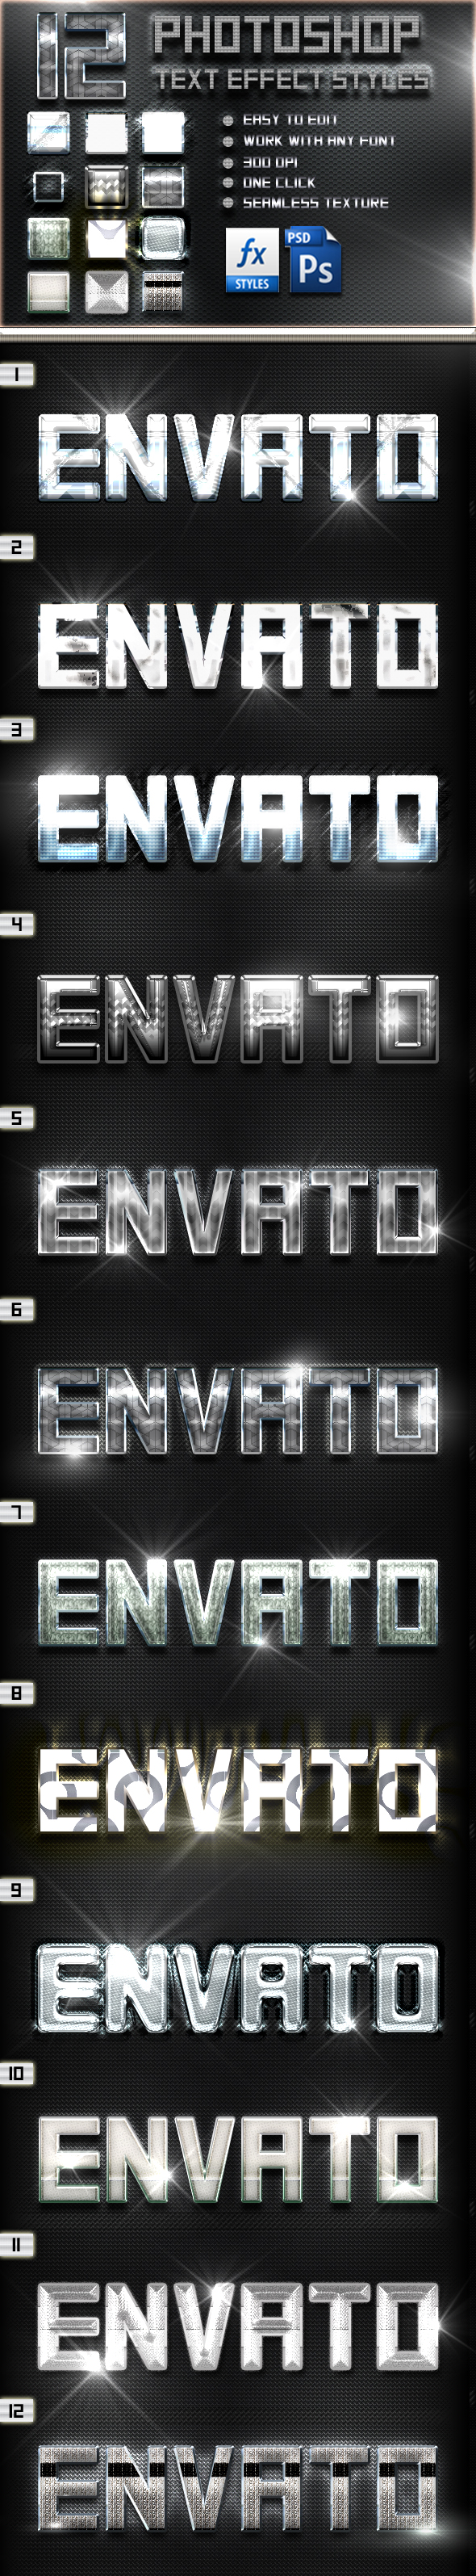 12 Photoshop Chrome Text Effect Styles Vol 36 - Text Effects Styles